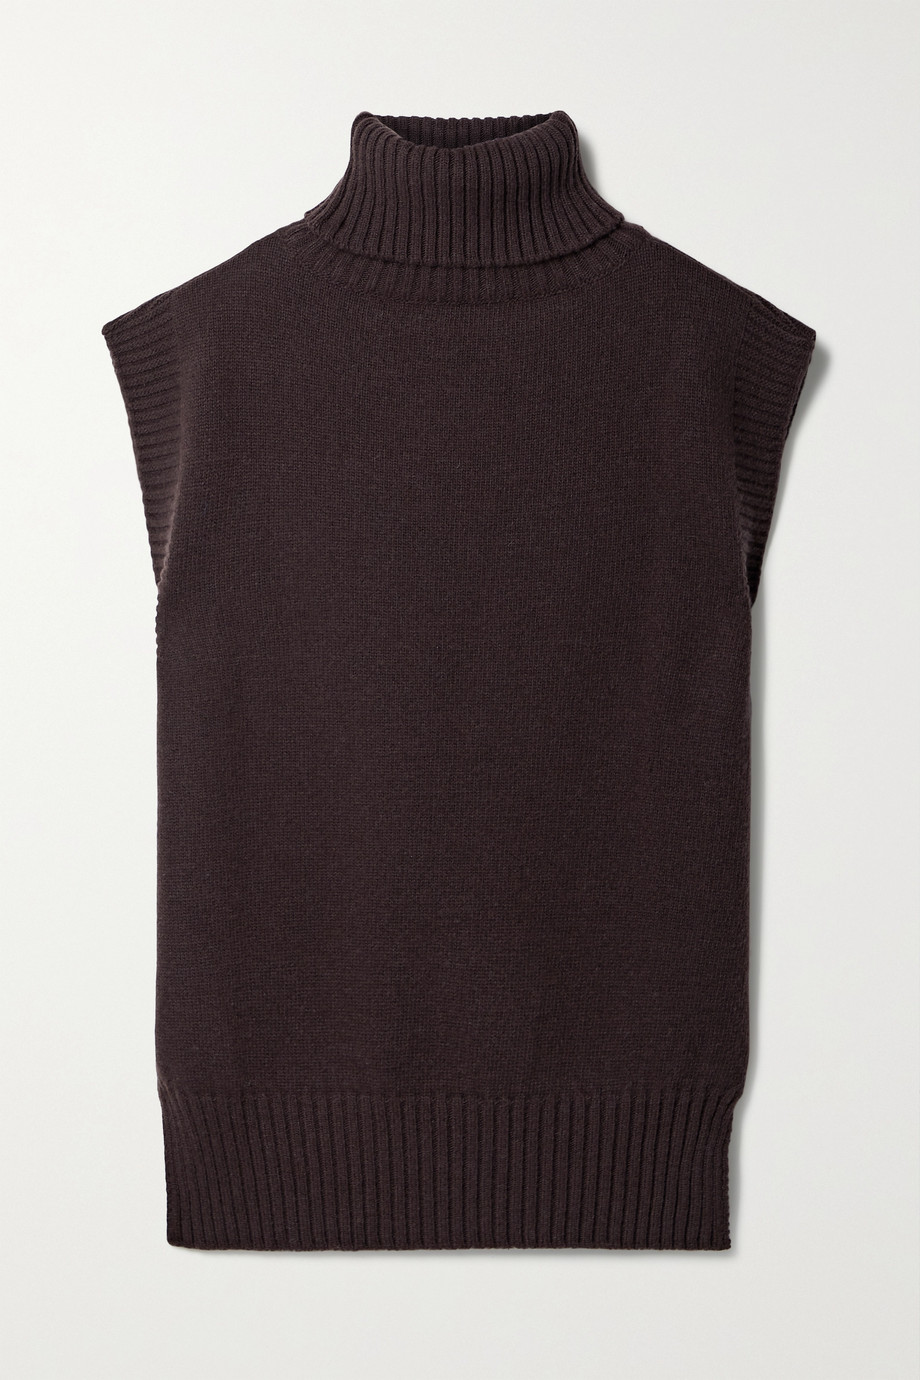 FRANKIE SHOP Wool-blend turtleneck sweater